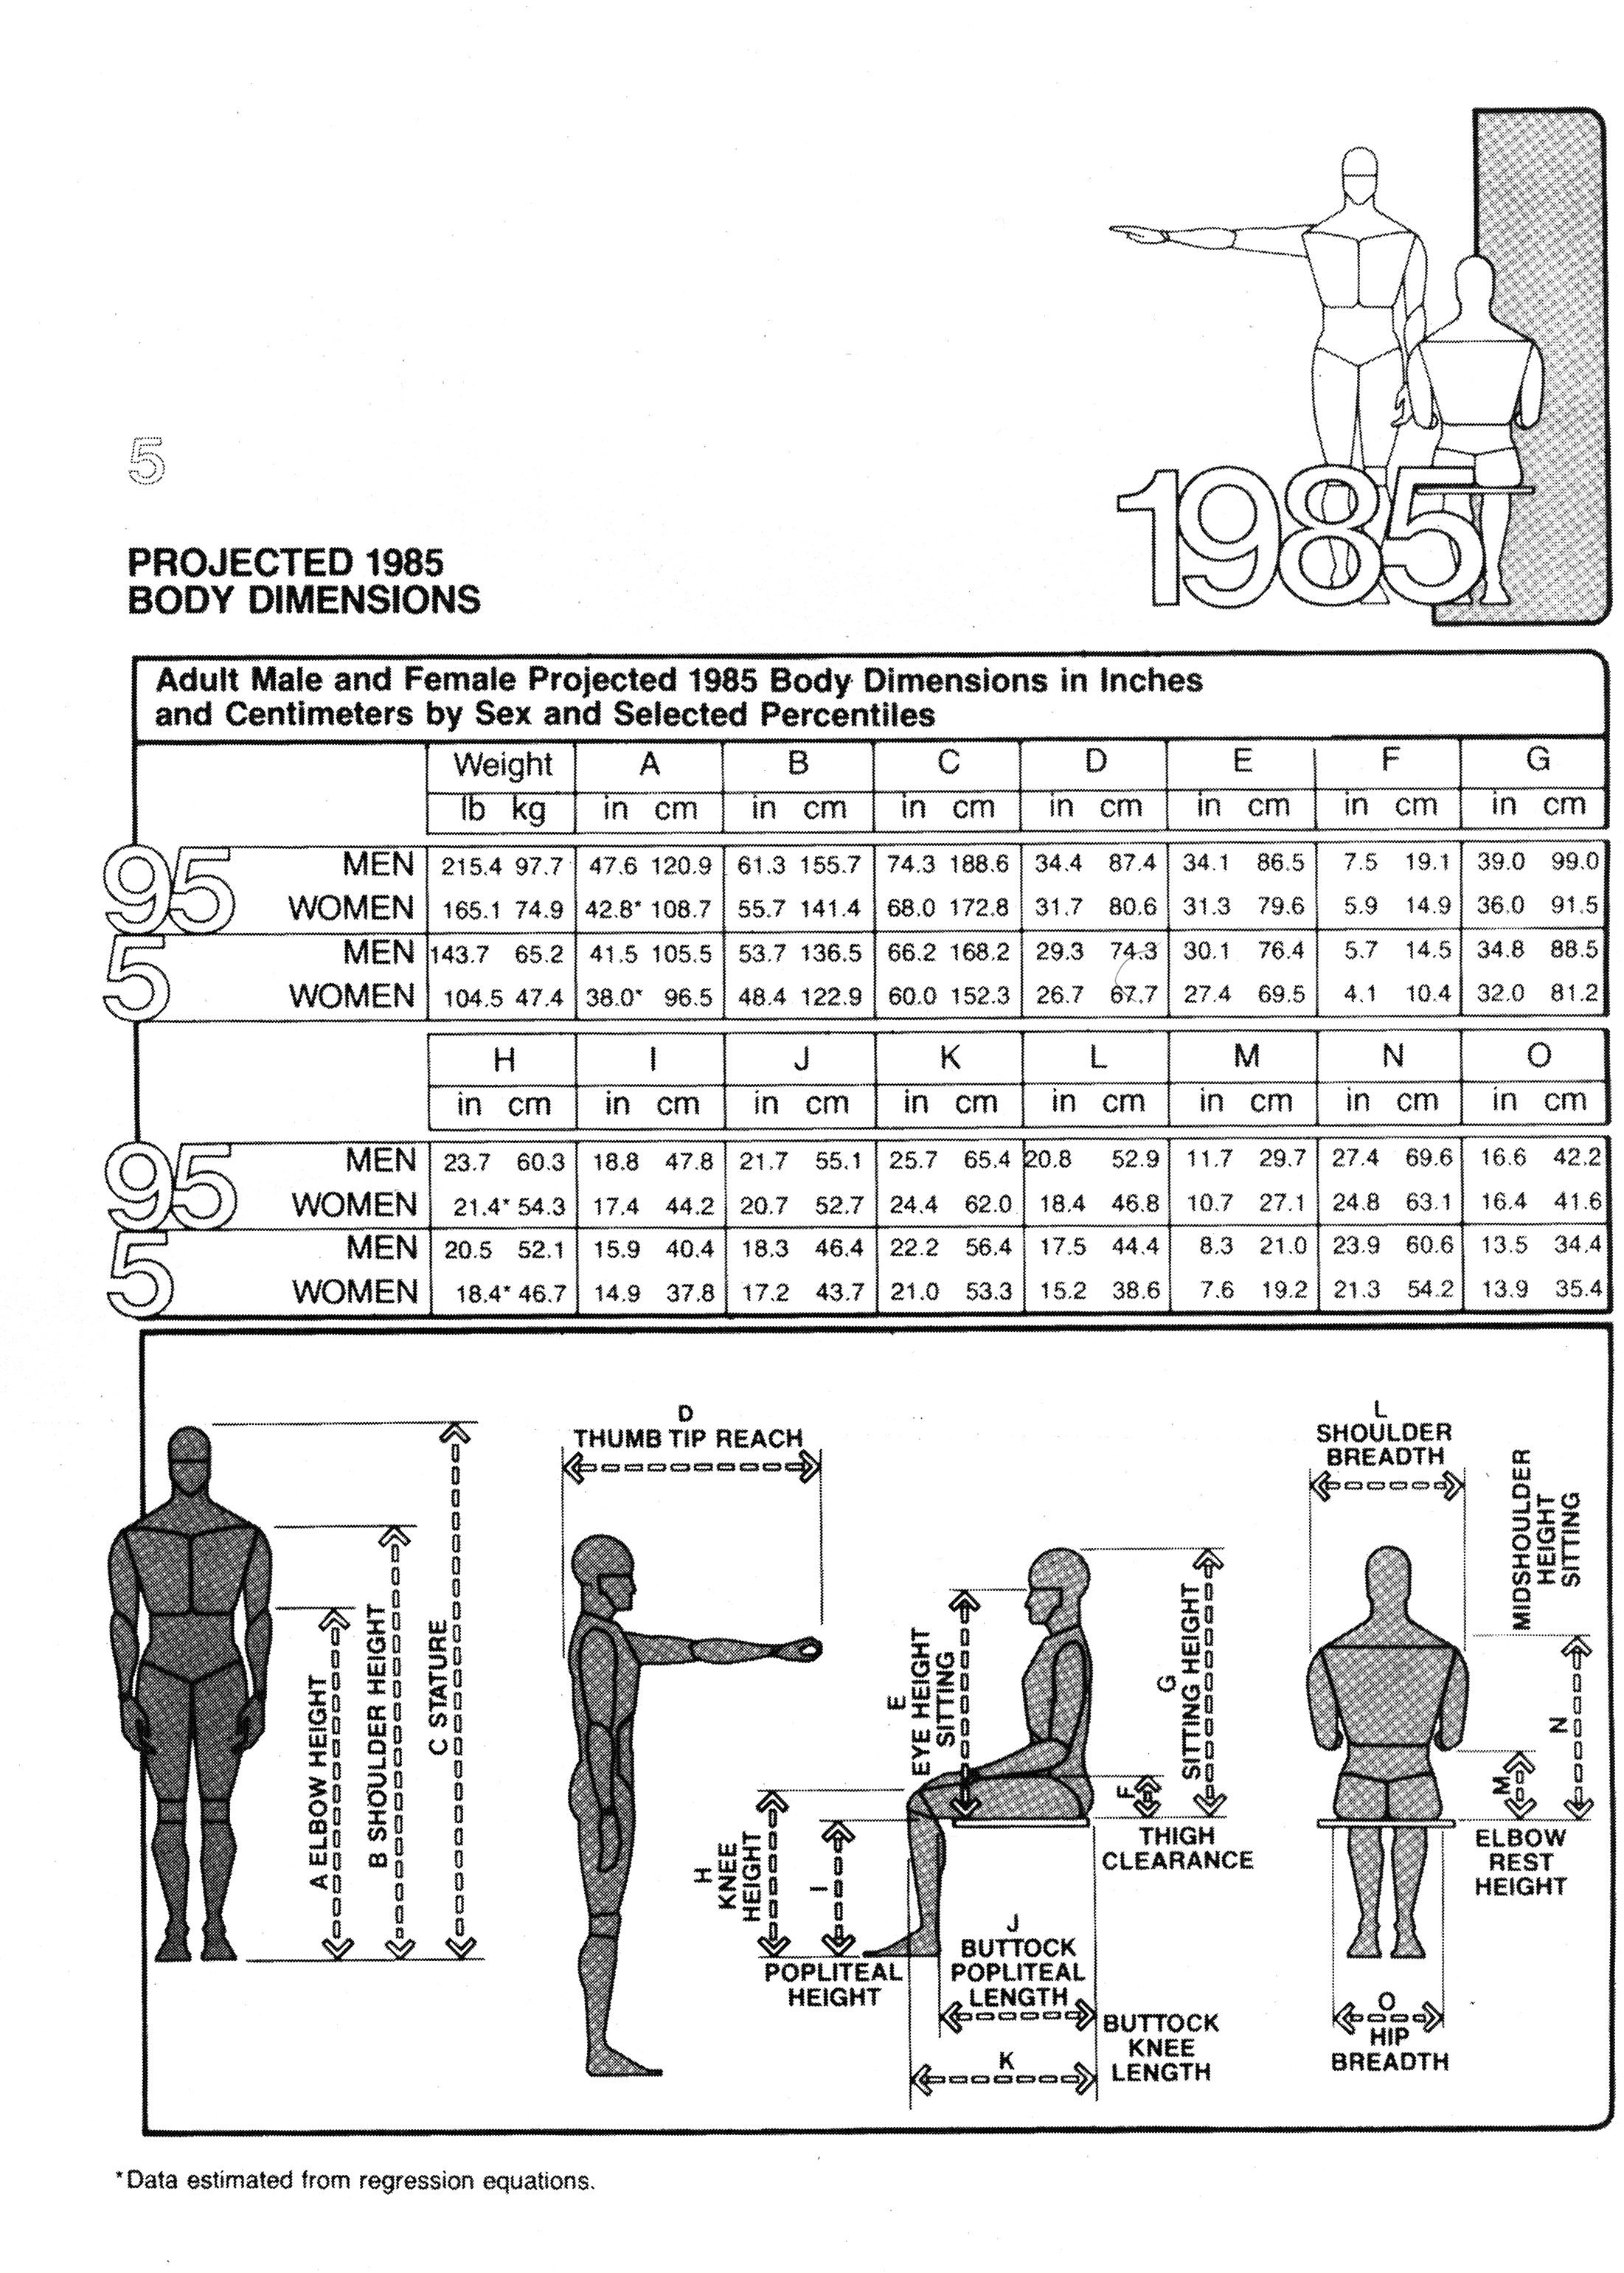 anthropometric standardization reference manual pdf